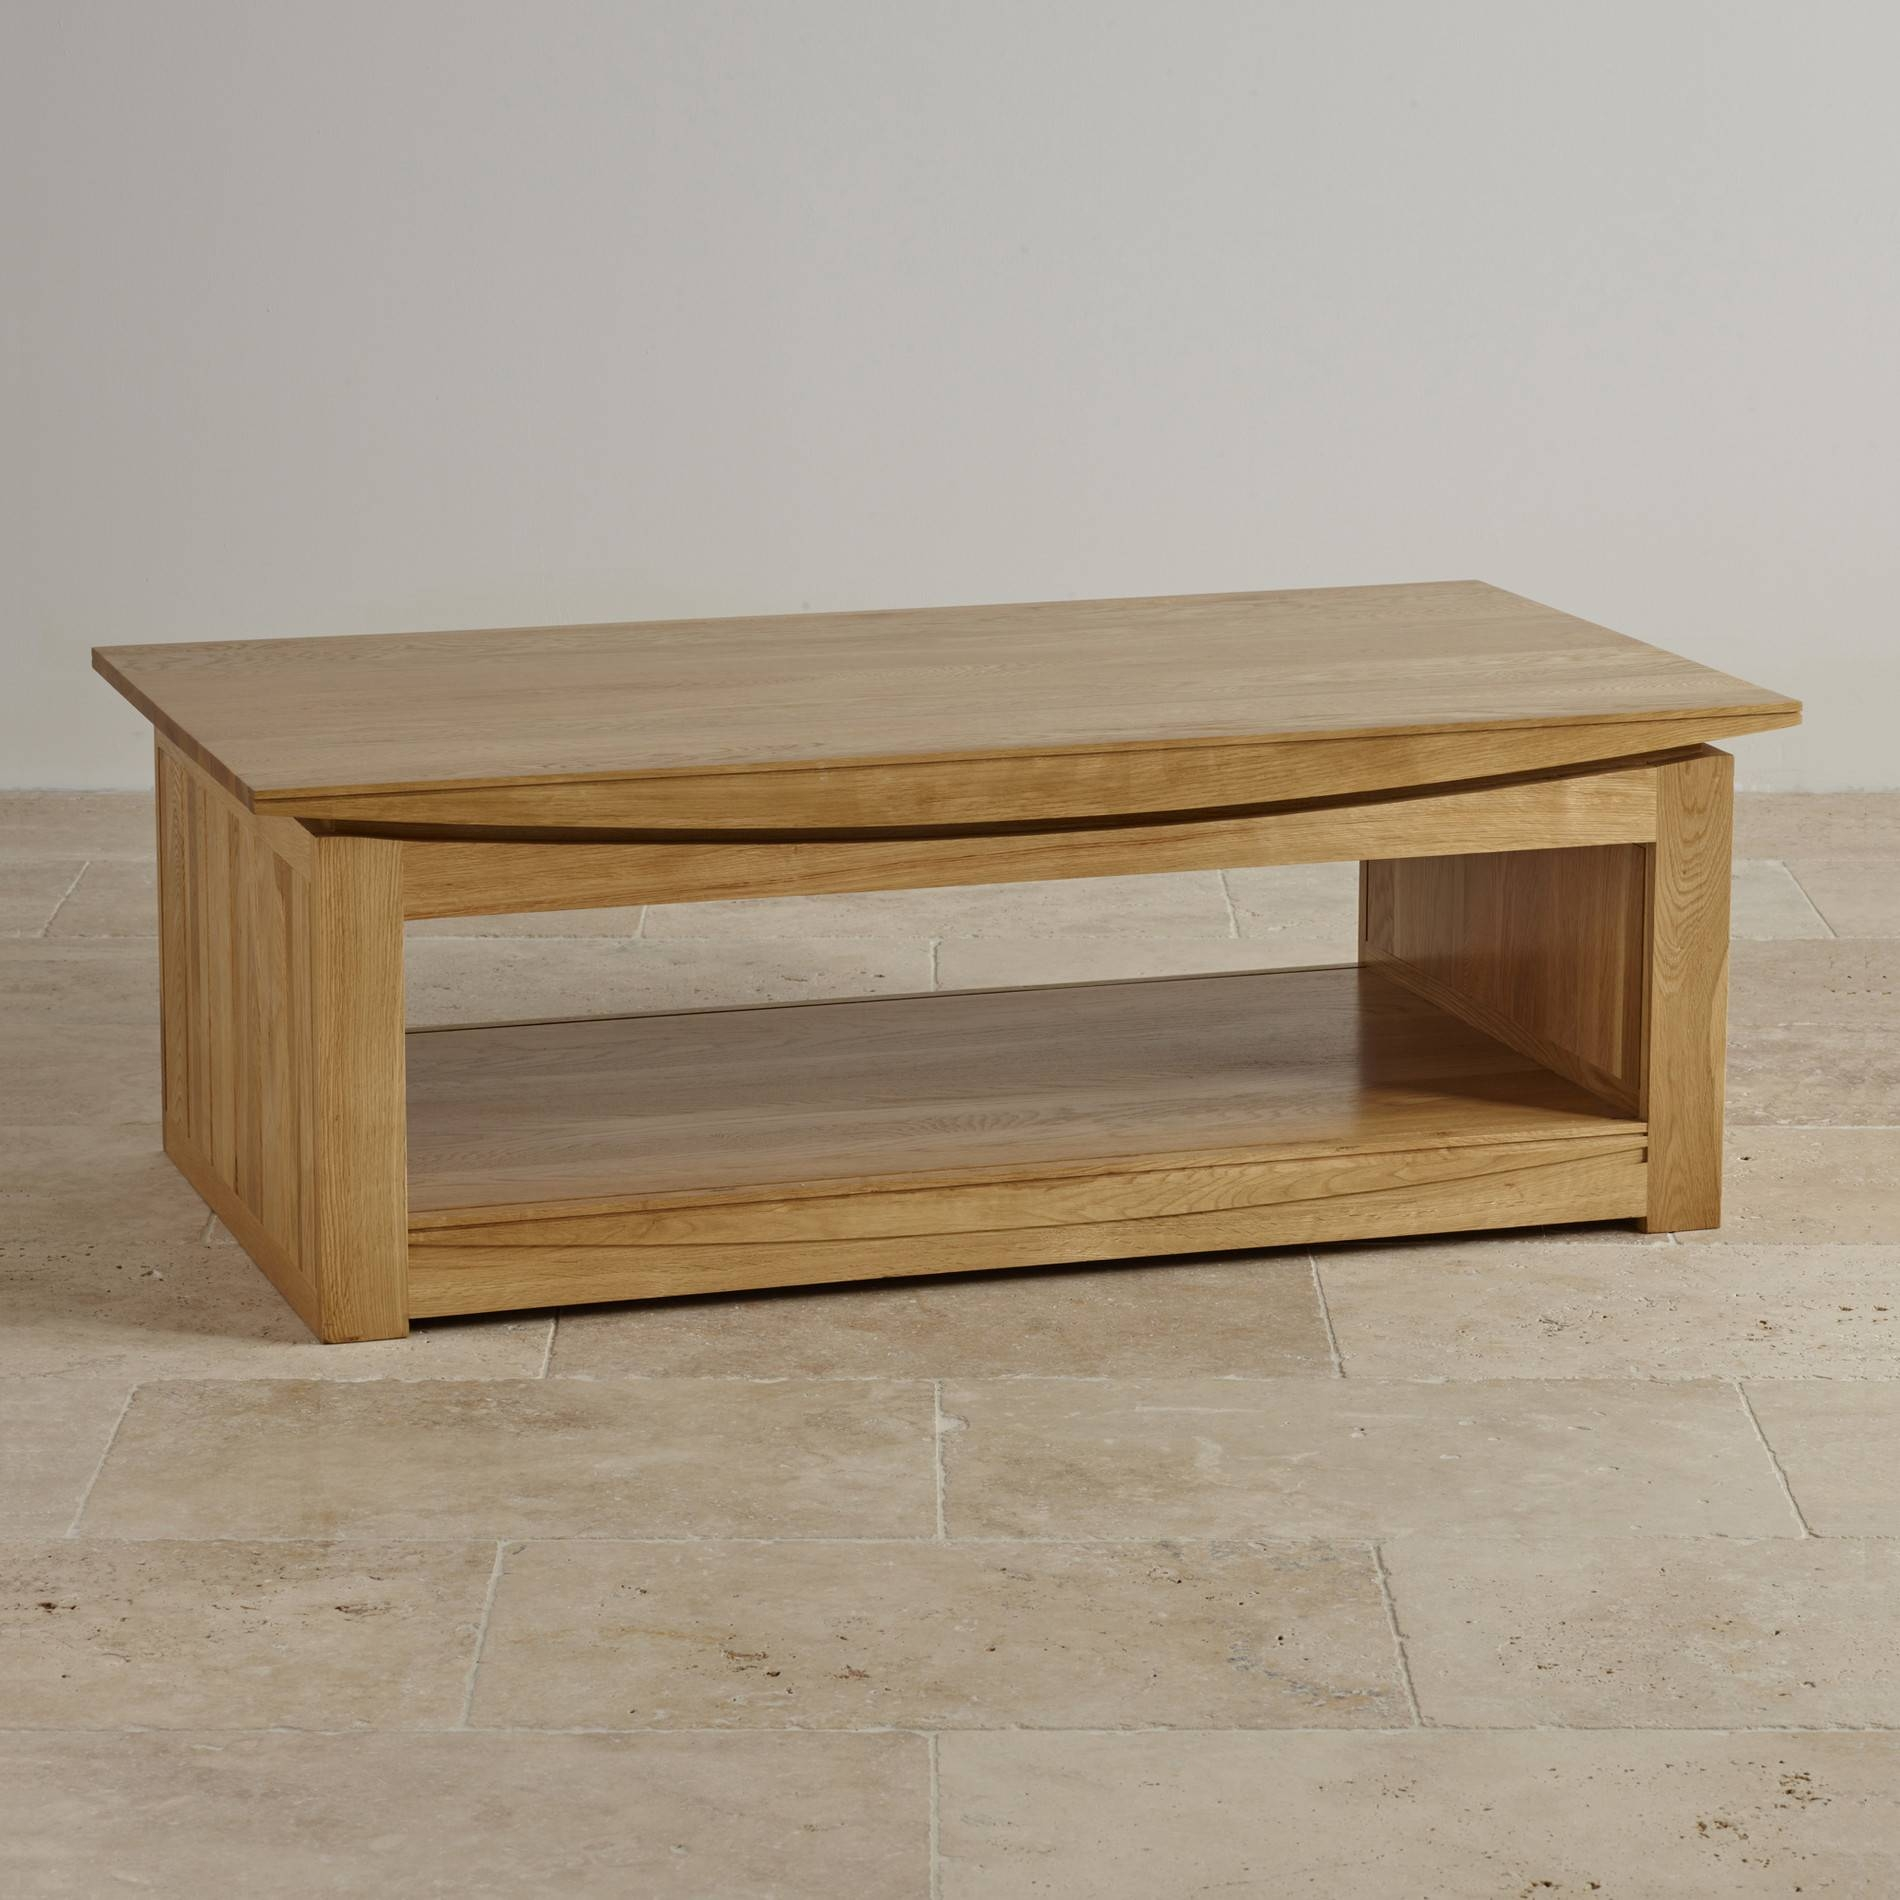 Tokyo Natural Solid Oak Large Coffee Tableoak Furniture Land inside Large Wood Coffee Tables (Image 14 of 15)